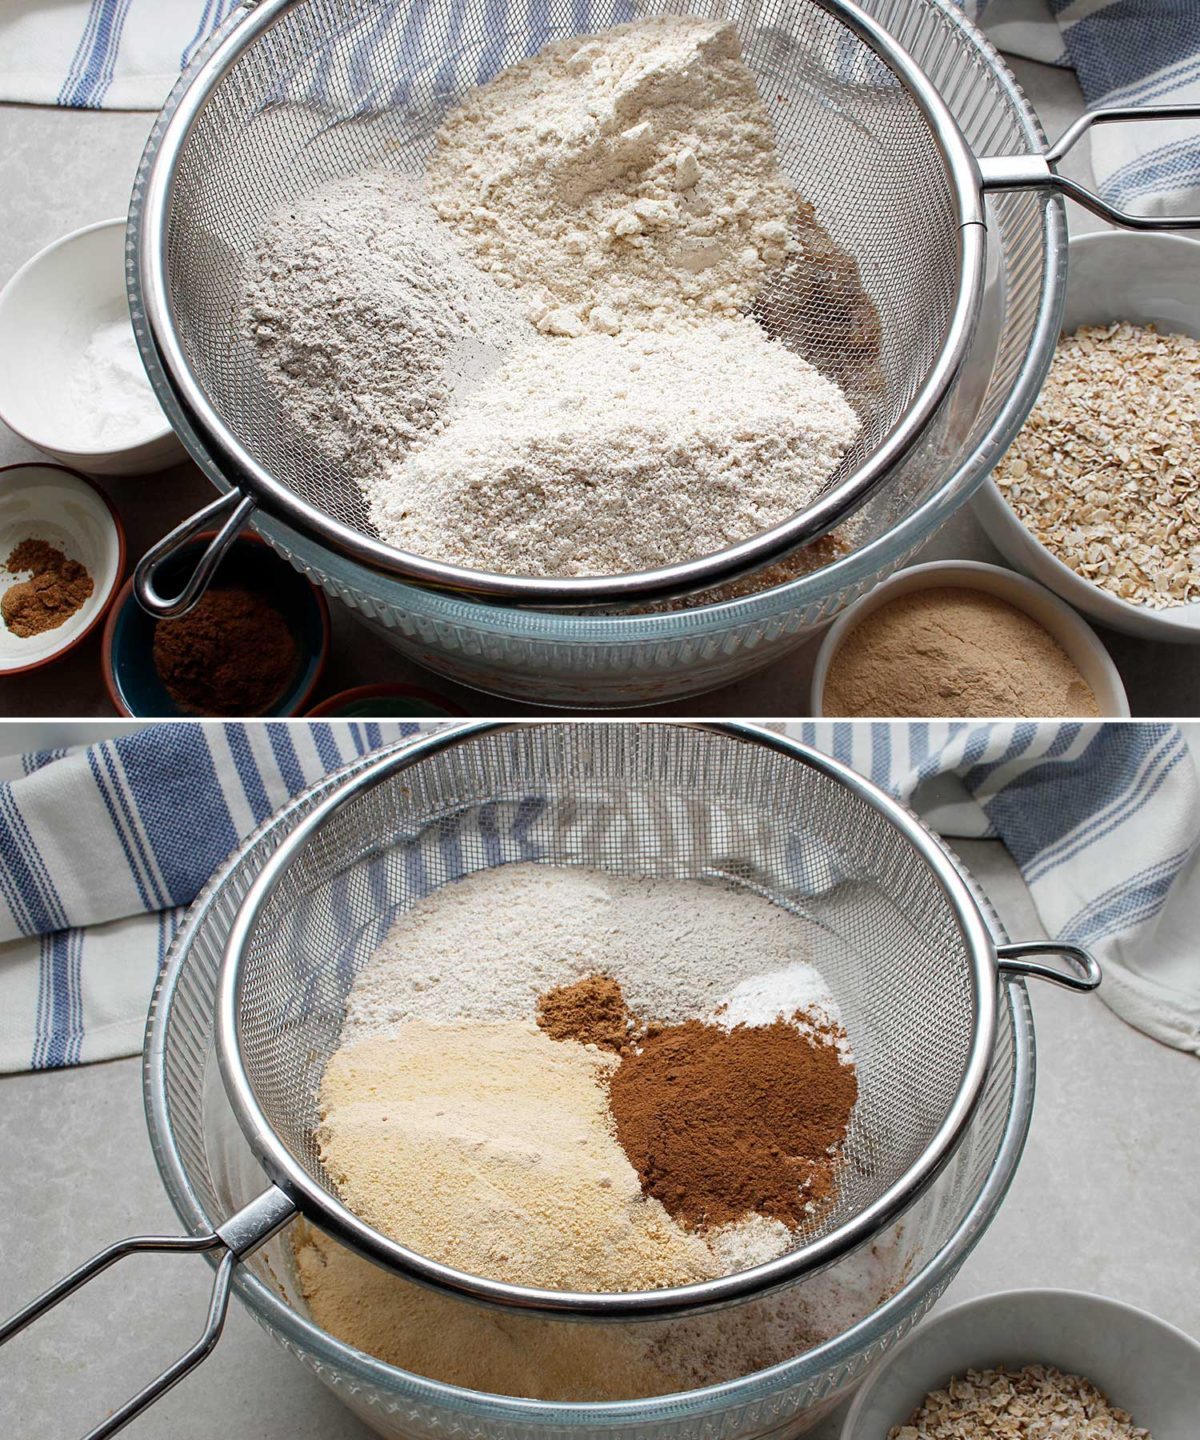 A sifter is placed overtop a large mixing bowl to sift the dry ingredients for an apple crisp bread recipe.